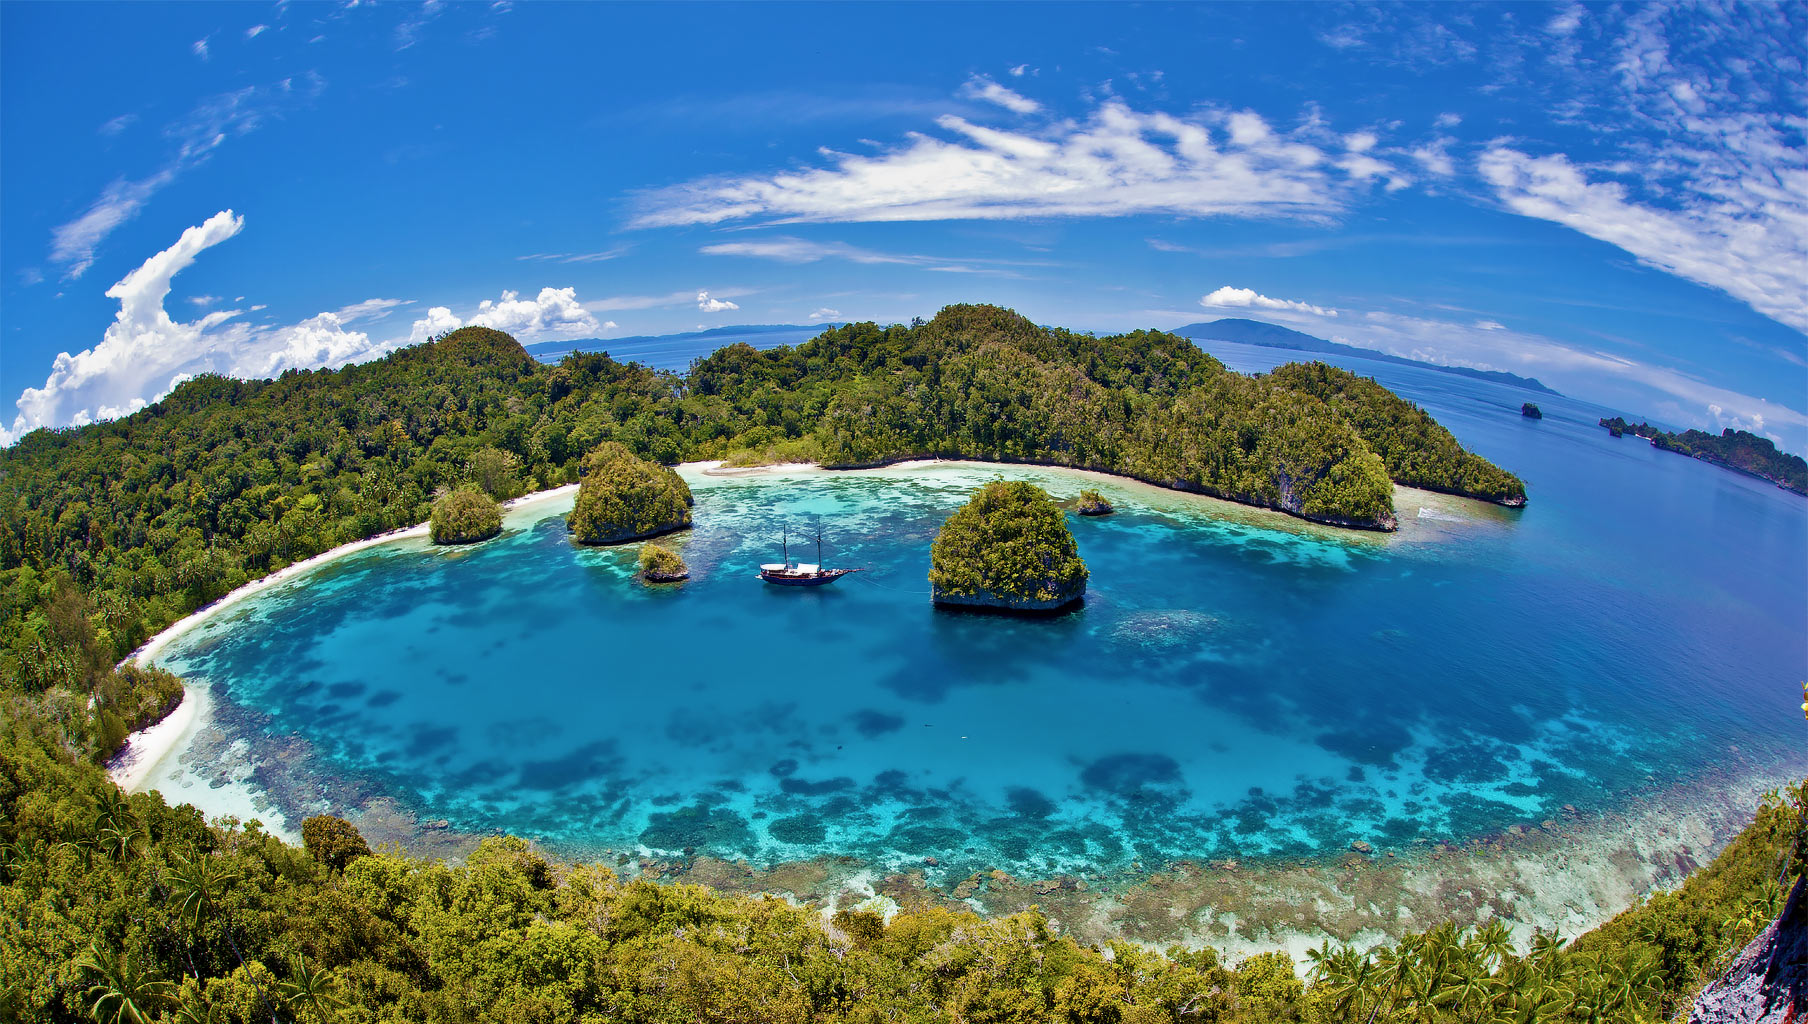 Banda Sea, via Seal Superyachts Indonesia.